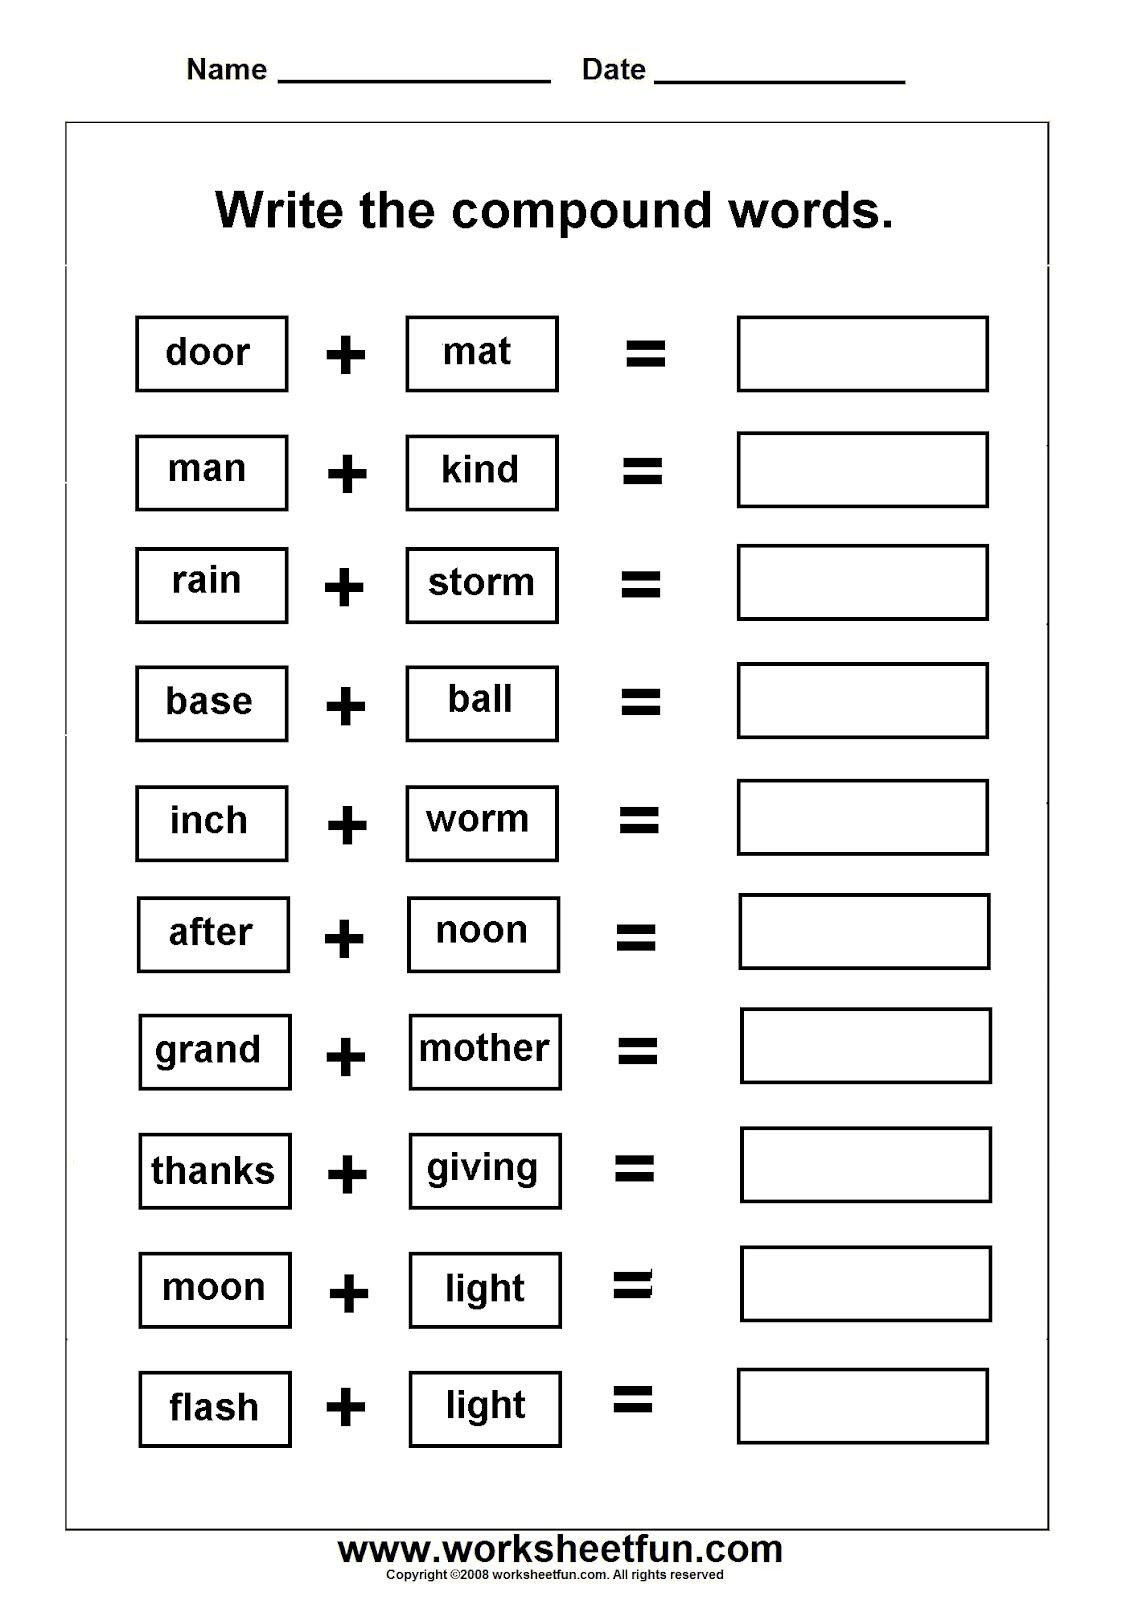 Worksheets On Compound Words With Pictures   Ela Activities - Printable Compound Word Crossword Puzzle